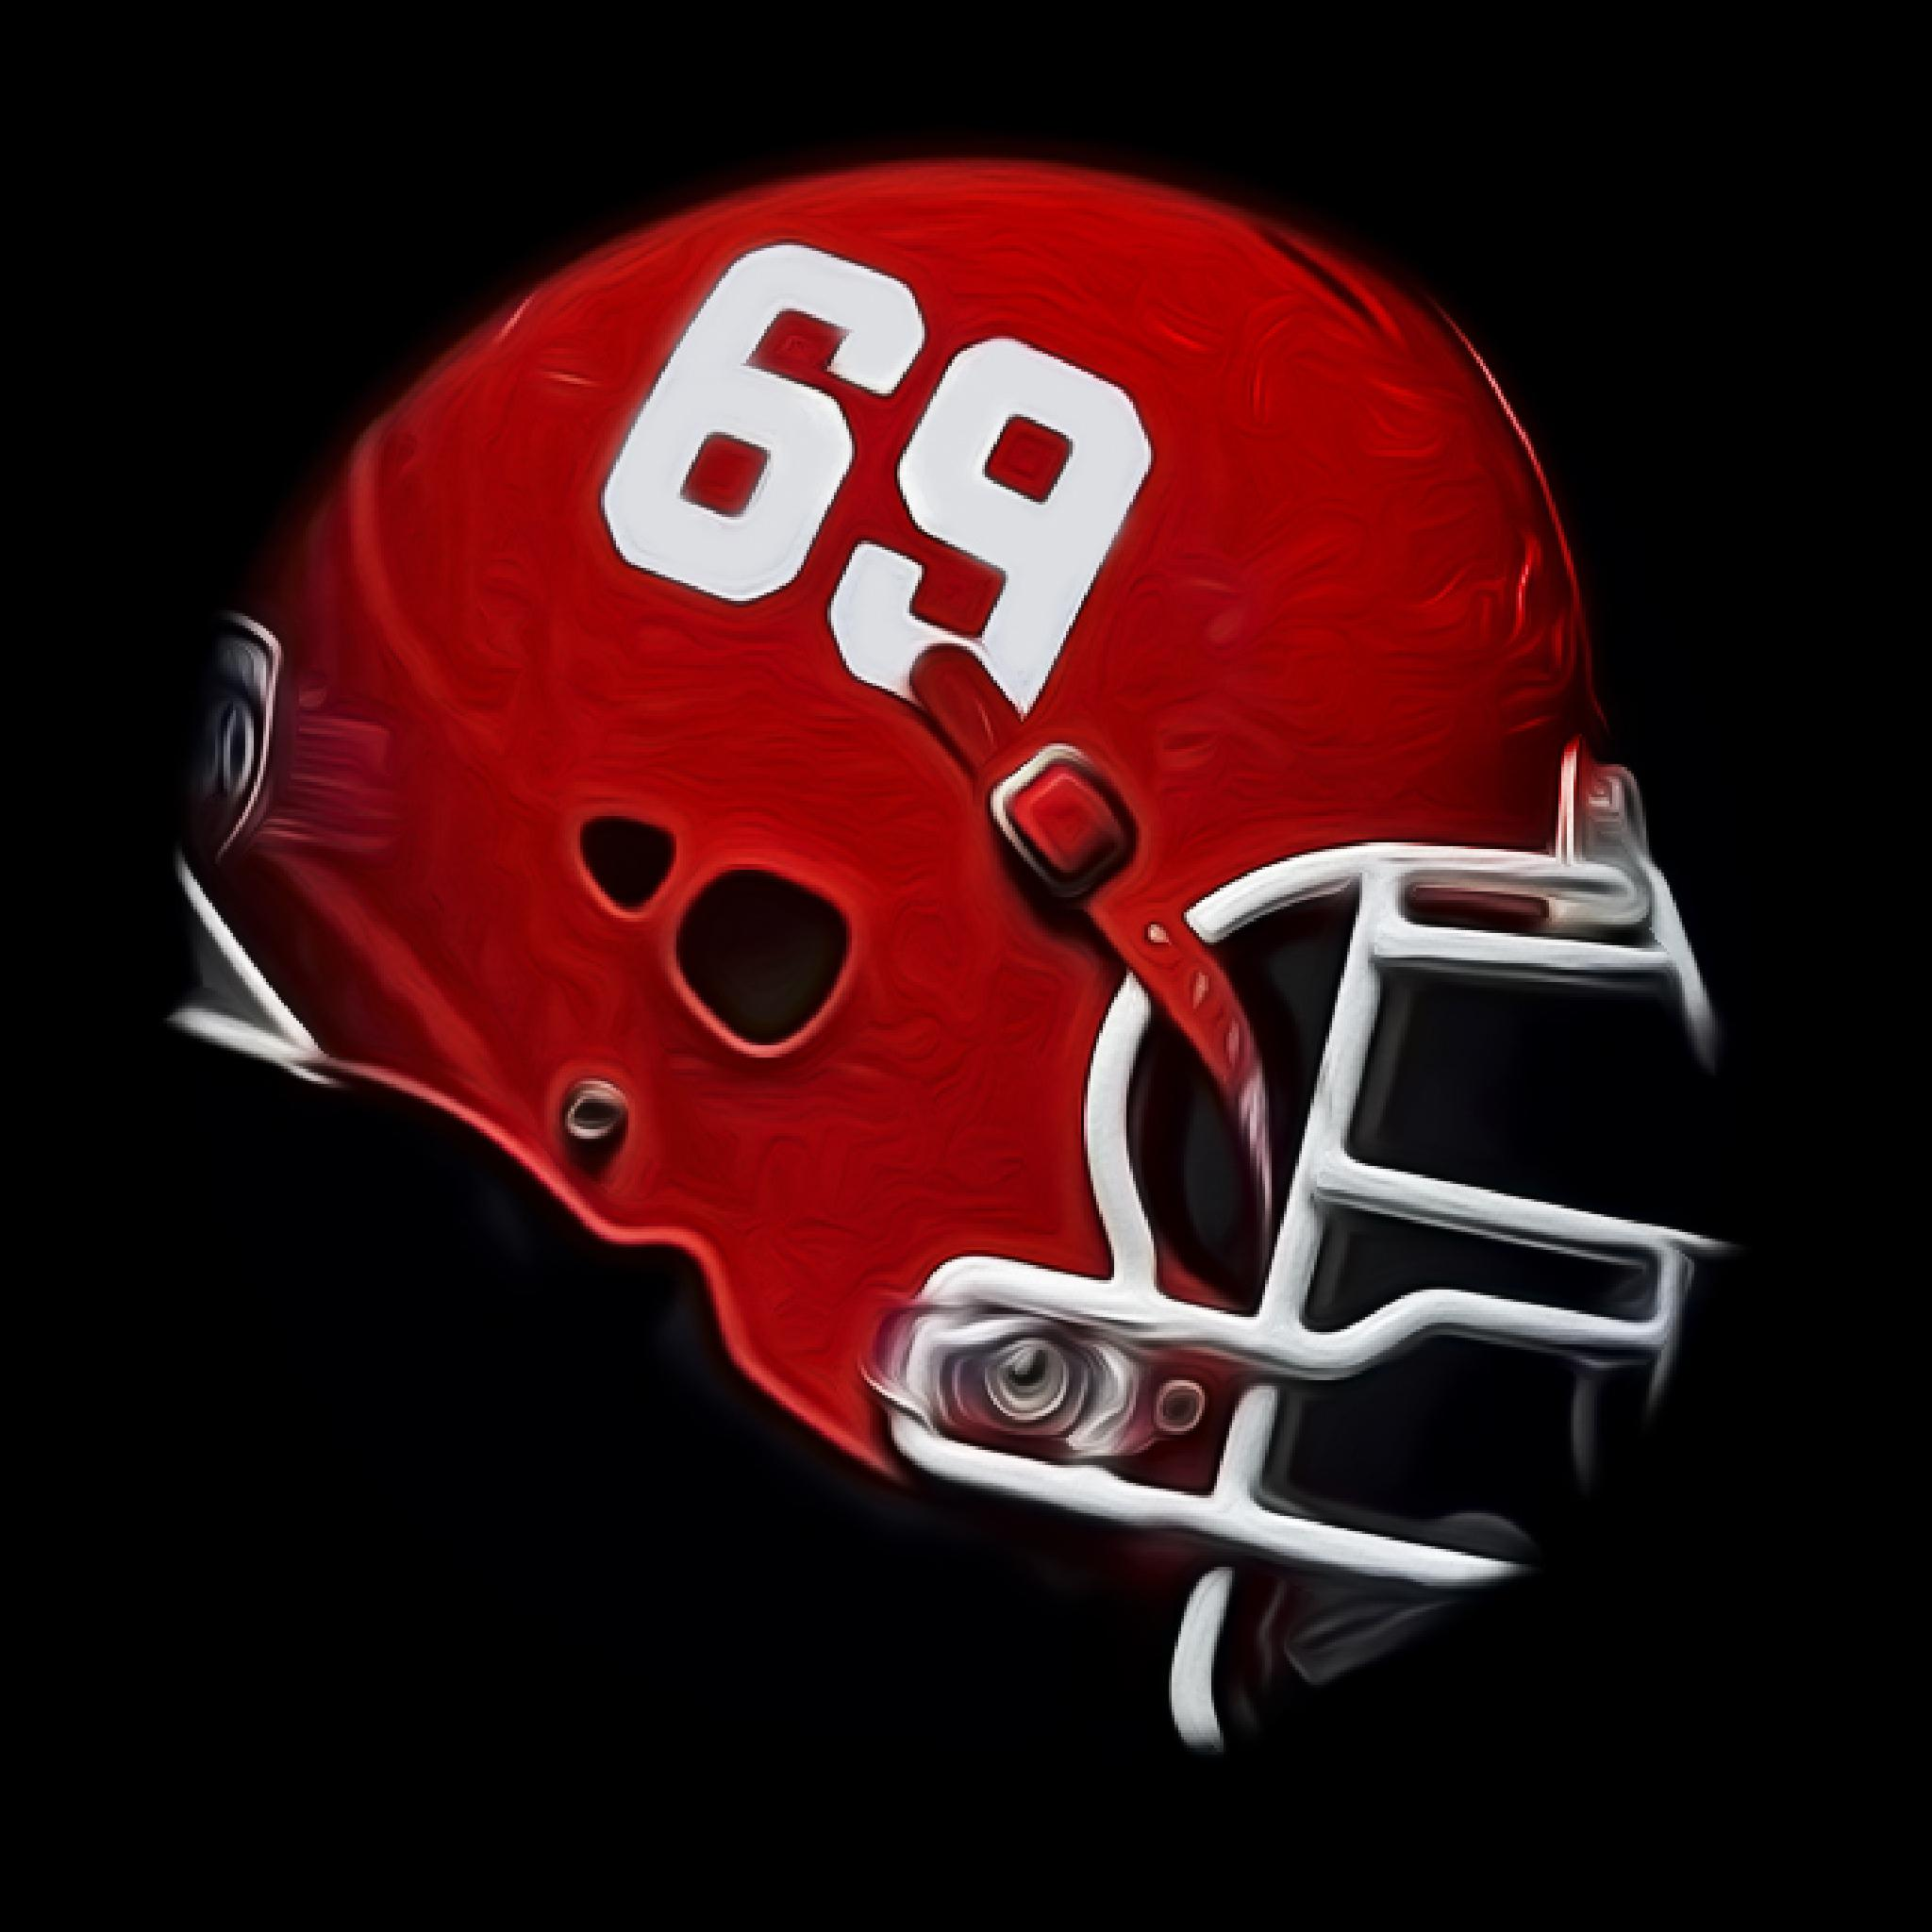 #69 Football Player  by AngeloN